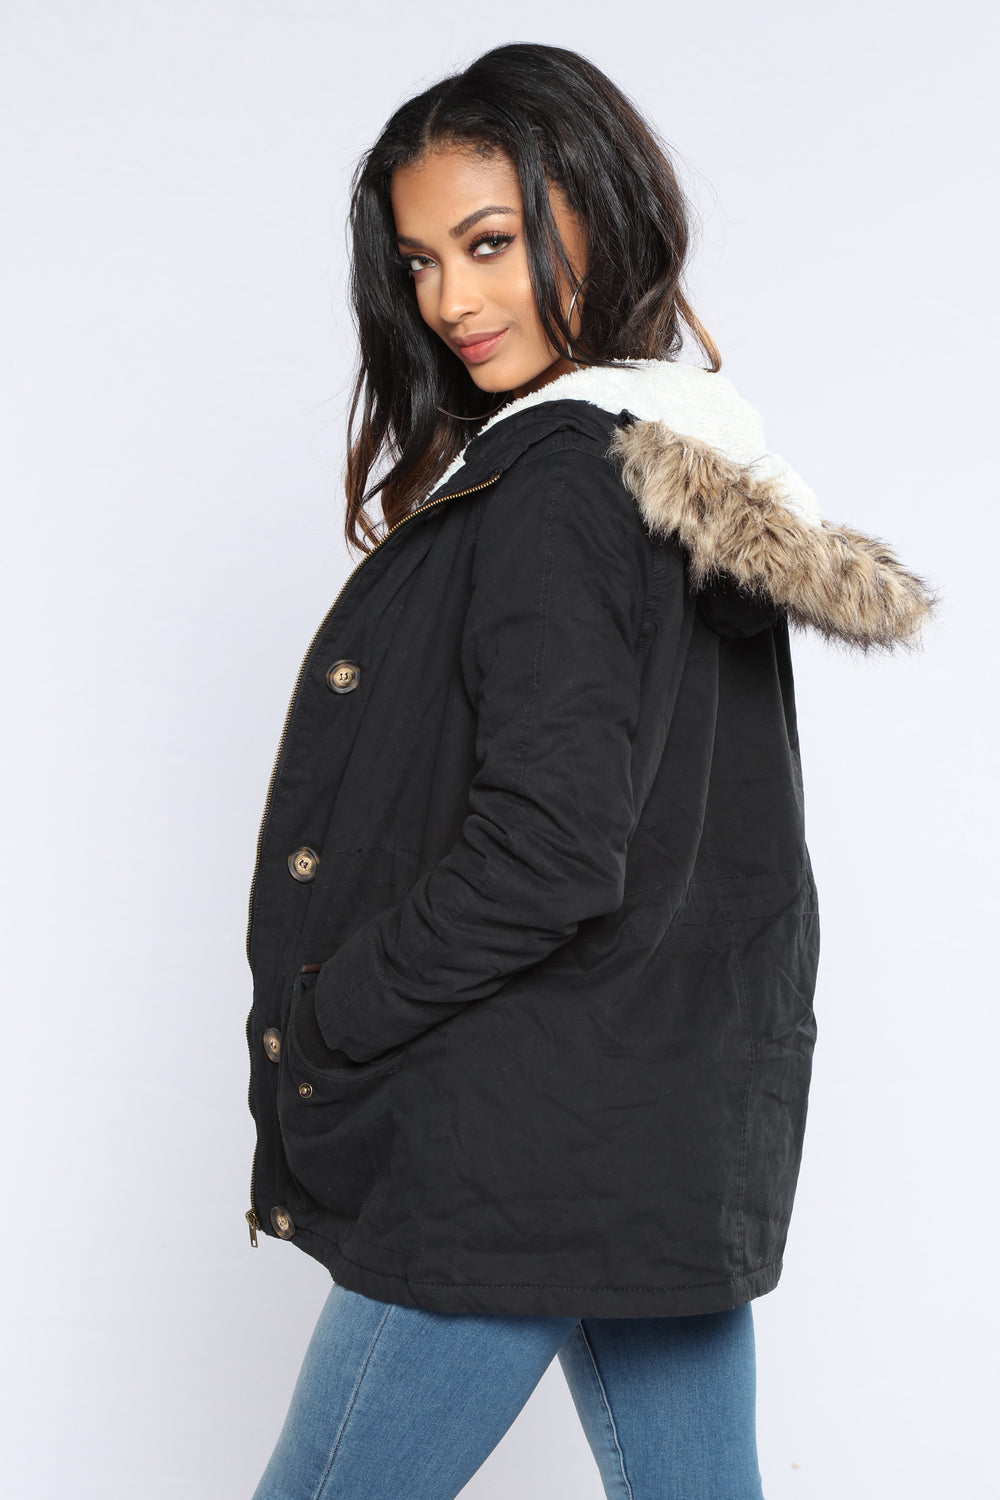 For The Chills Jacket - Black